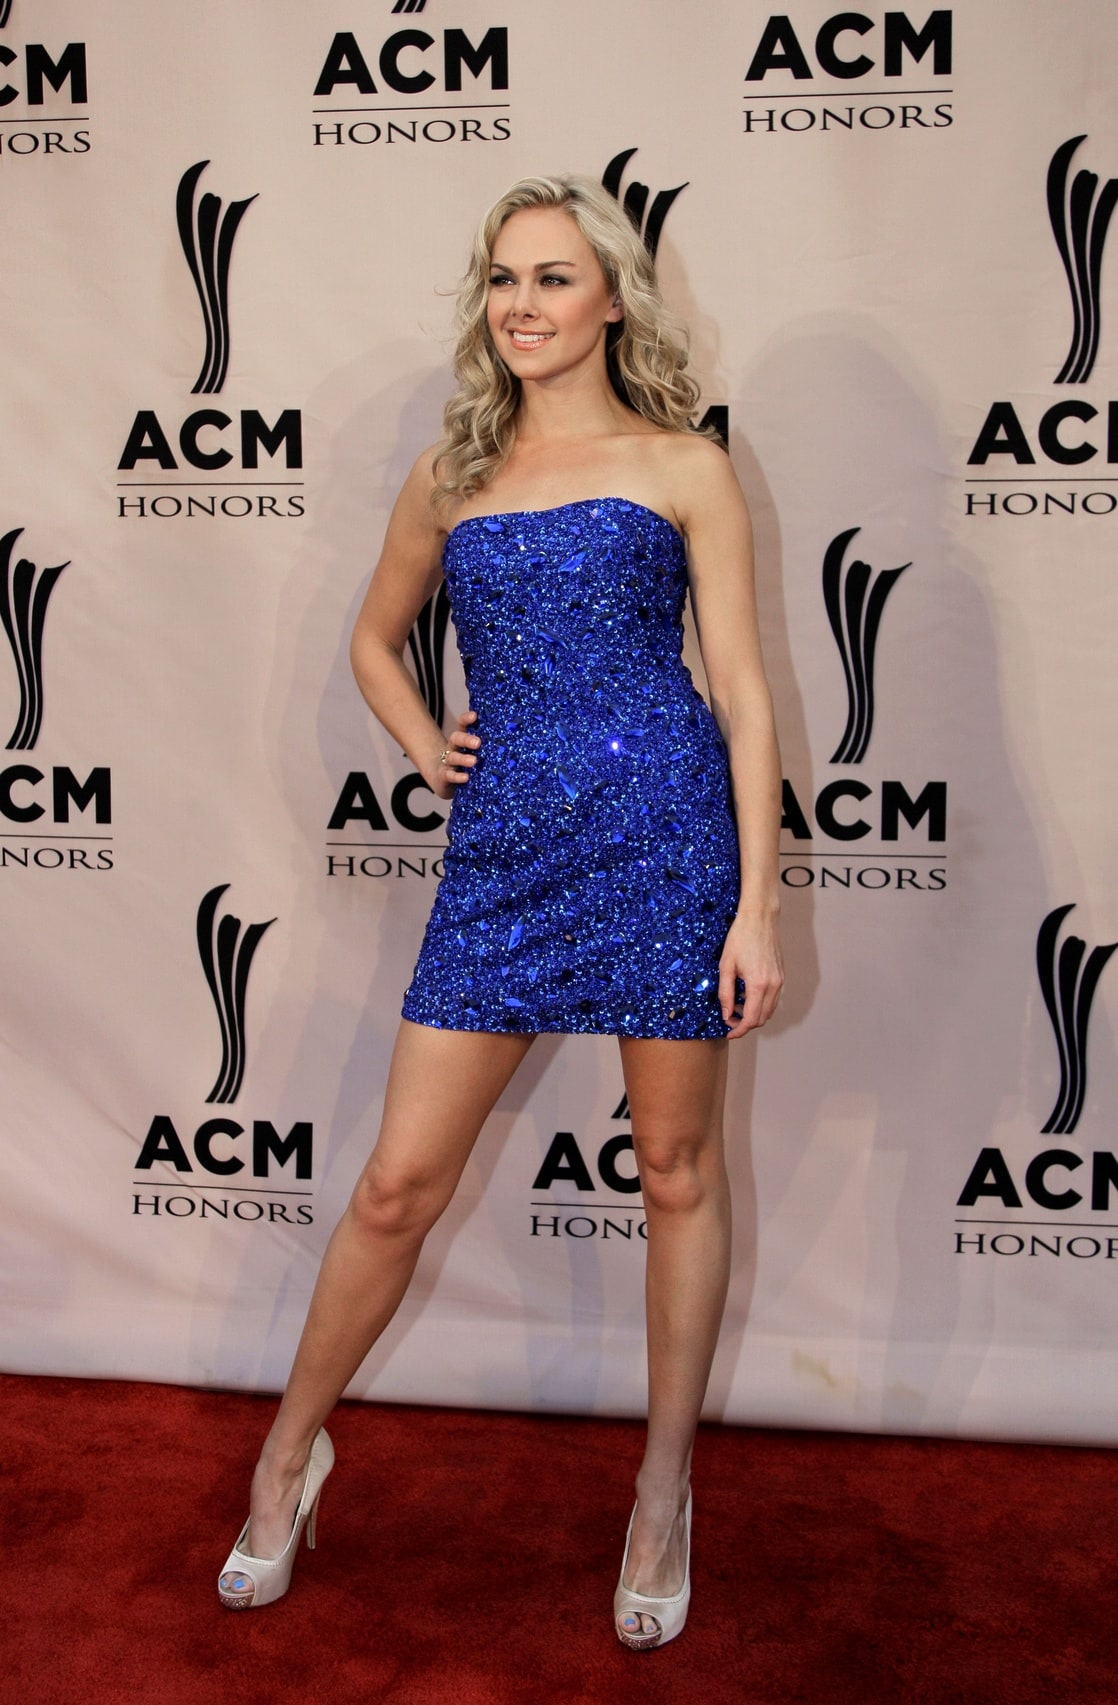 Laura Bell Bundy with a weight of 54 kg and a feet size of 8 in favorite outfit & clothing style